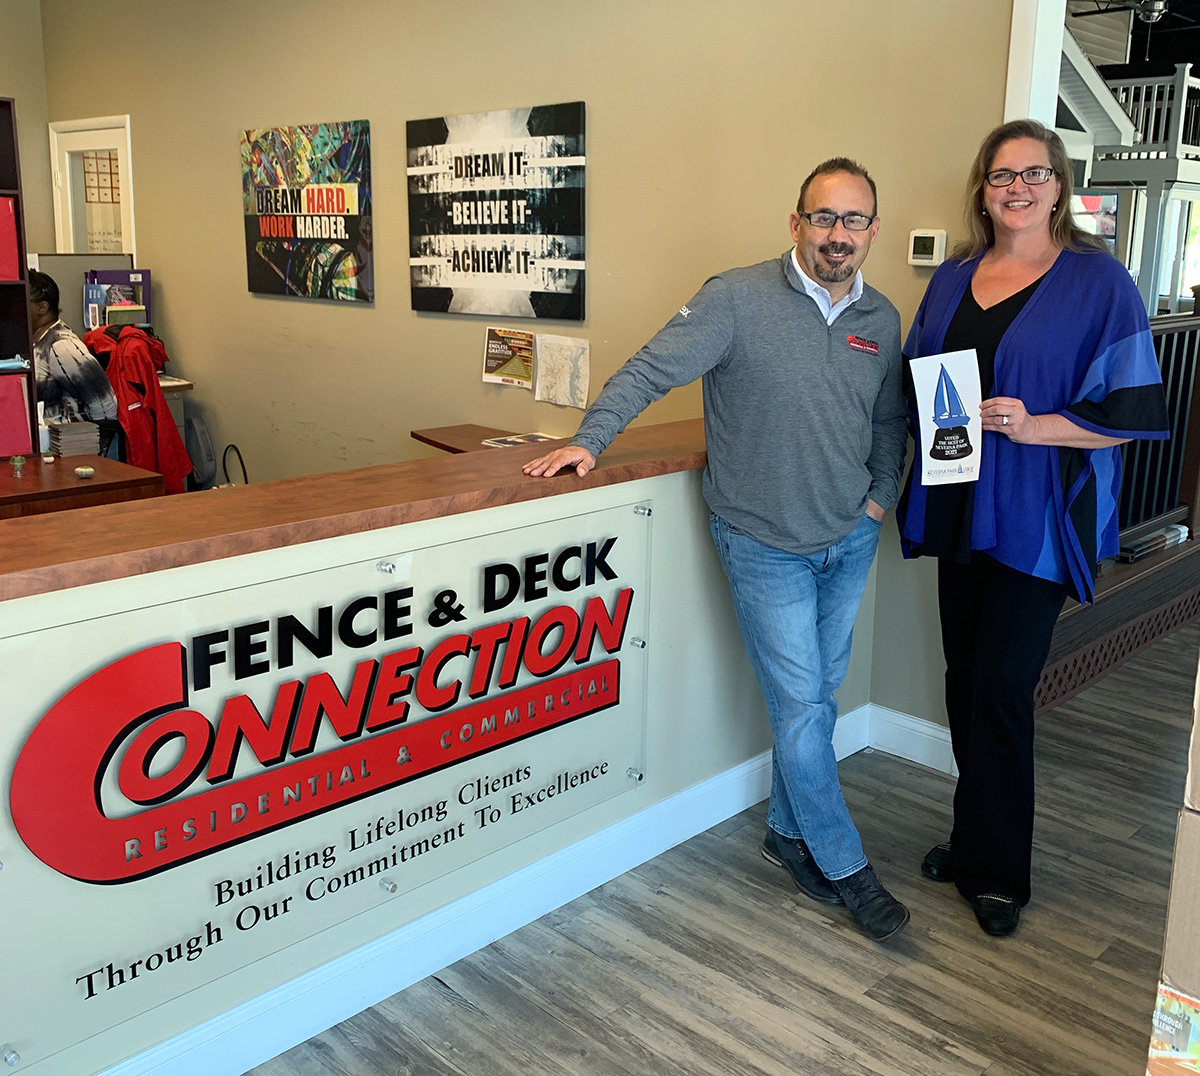 On behalf of Fence & Deck Connection, Jeffrey Wall and Sarah Ditto accepted the decal for Best Fence/Deck Contractor.